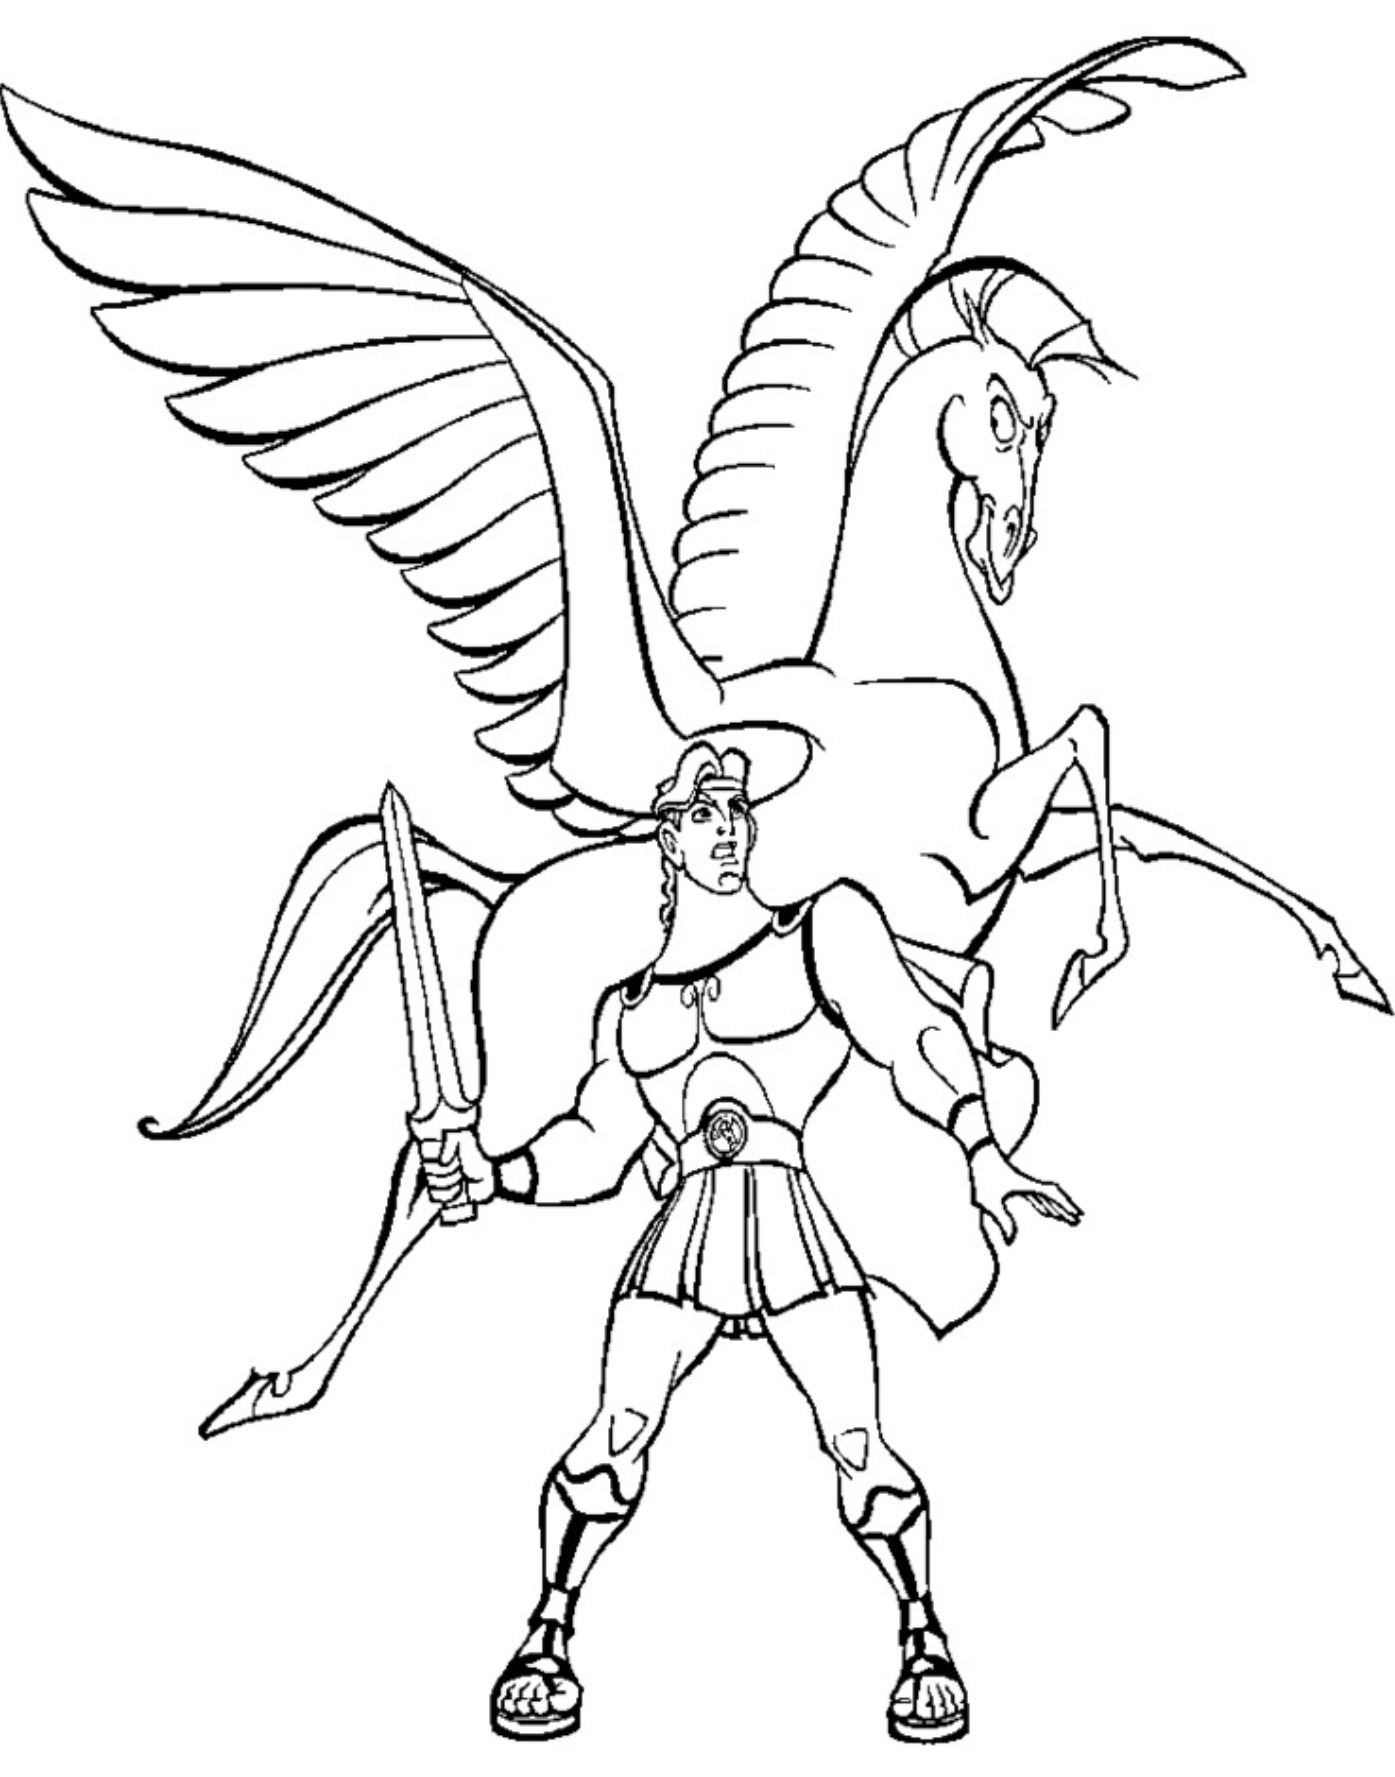 hercules coloring pages hercules showing his arms coloring page free hercules pages coloring hercules